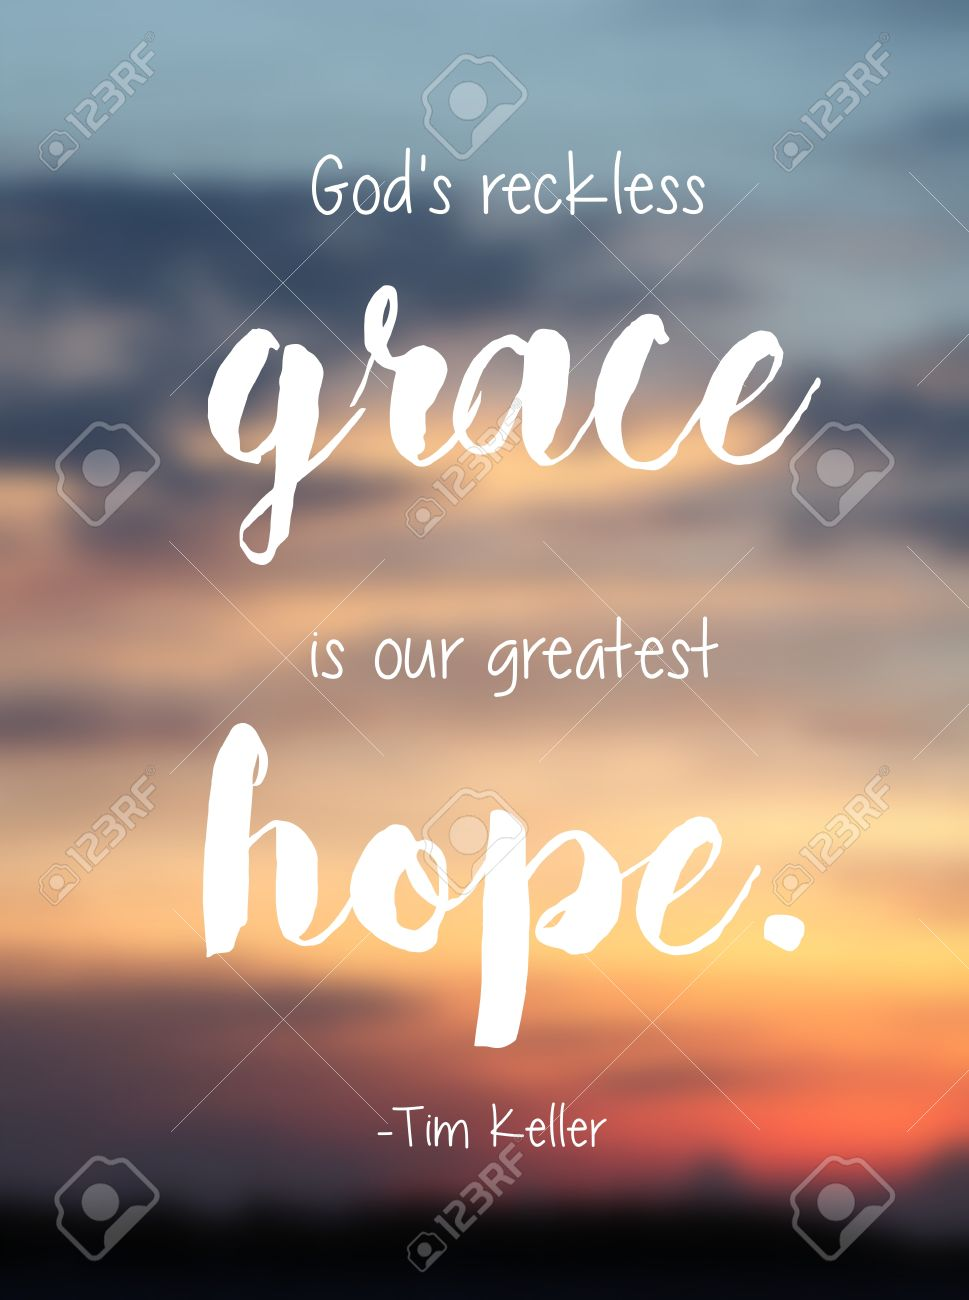 God Quote God's Reckless Grace Is Our Hope Tim Keller Quote Typography